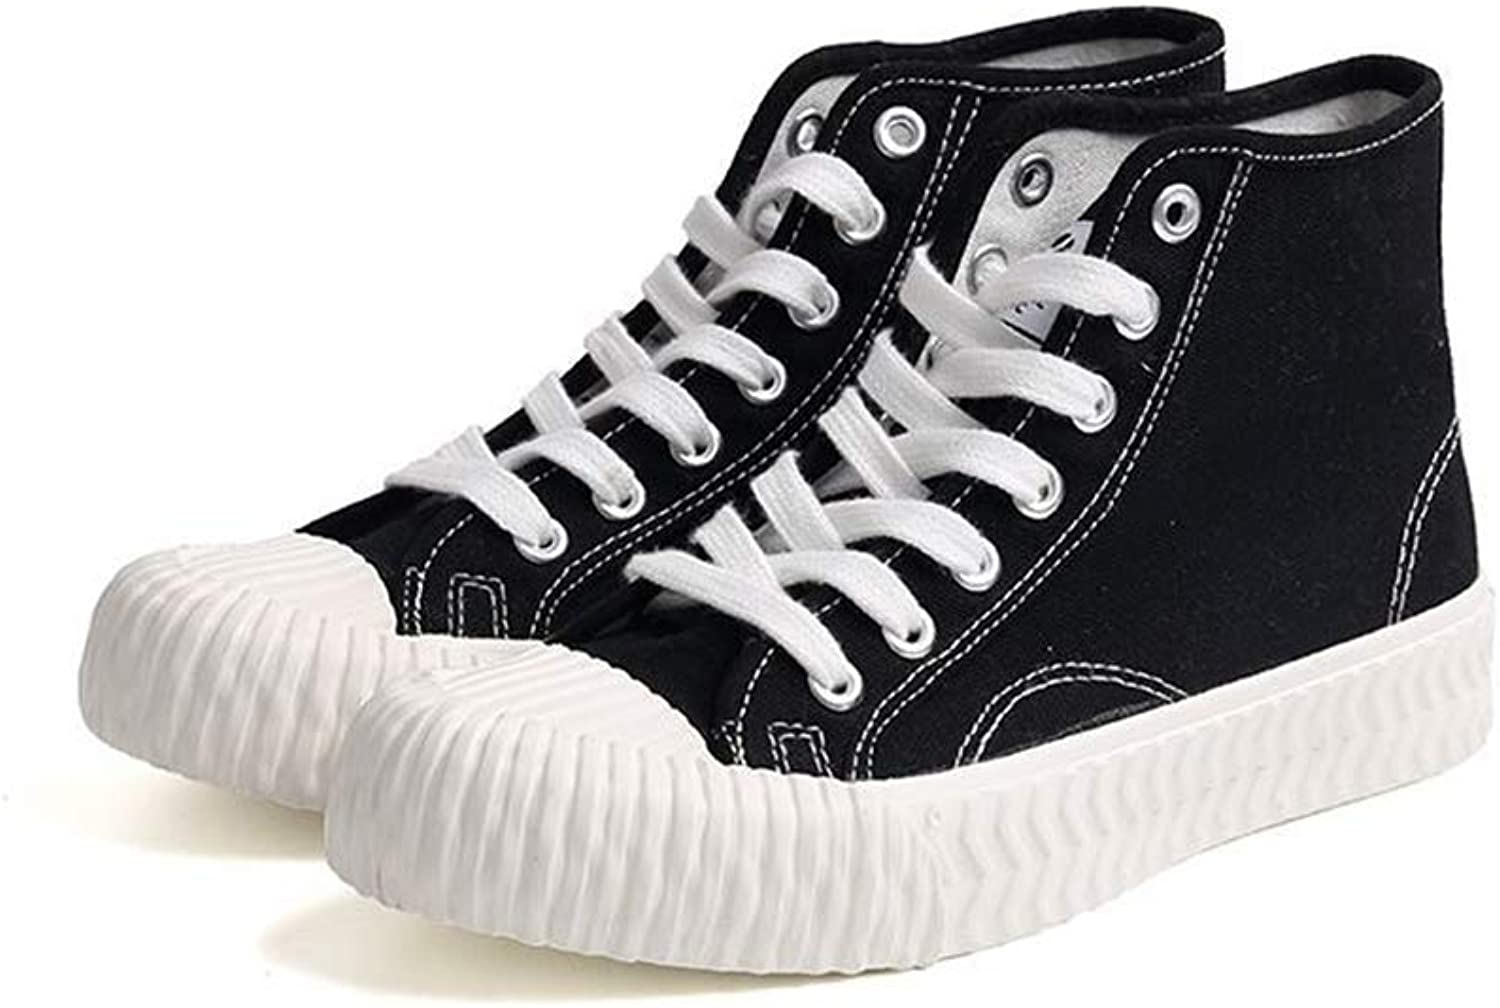 Meimeioo Women's High Top Classic Casual Canvas Fashion shoes Trainers Sneakers